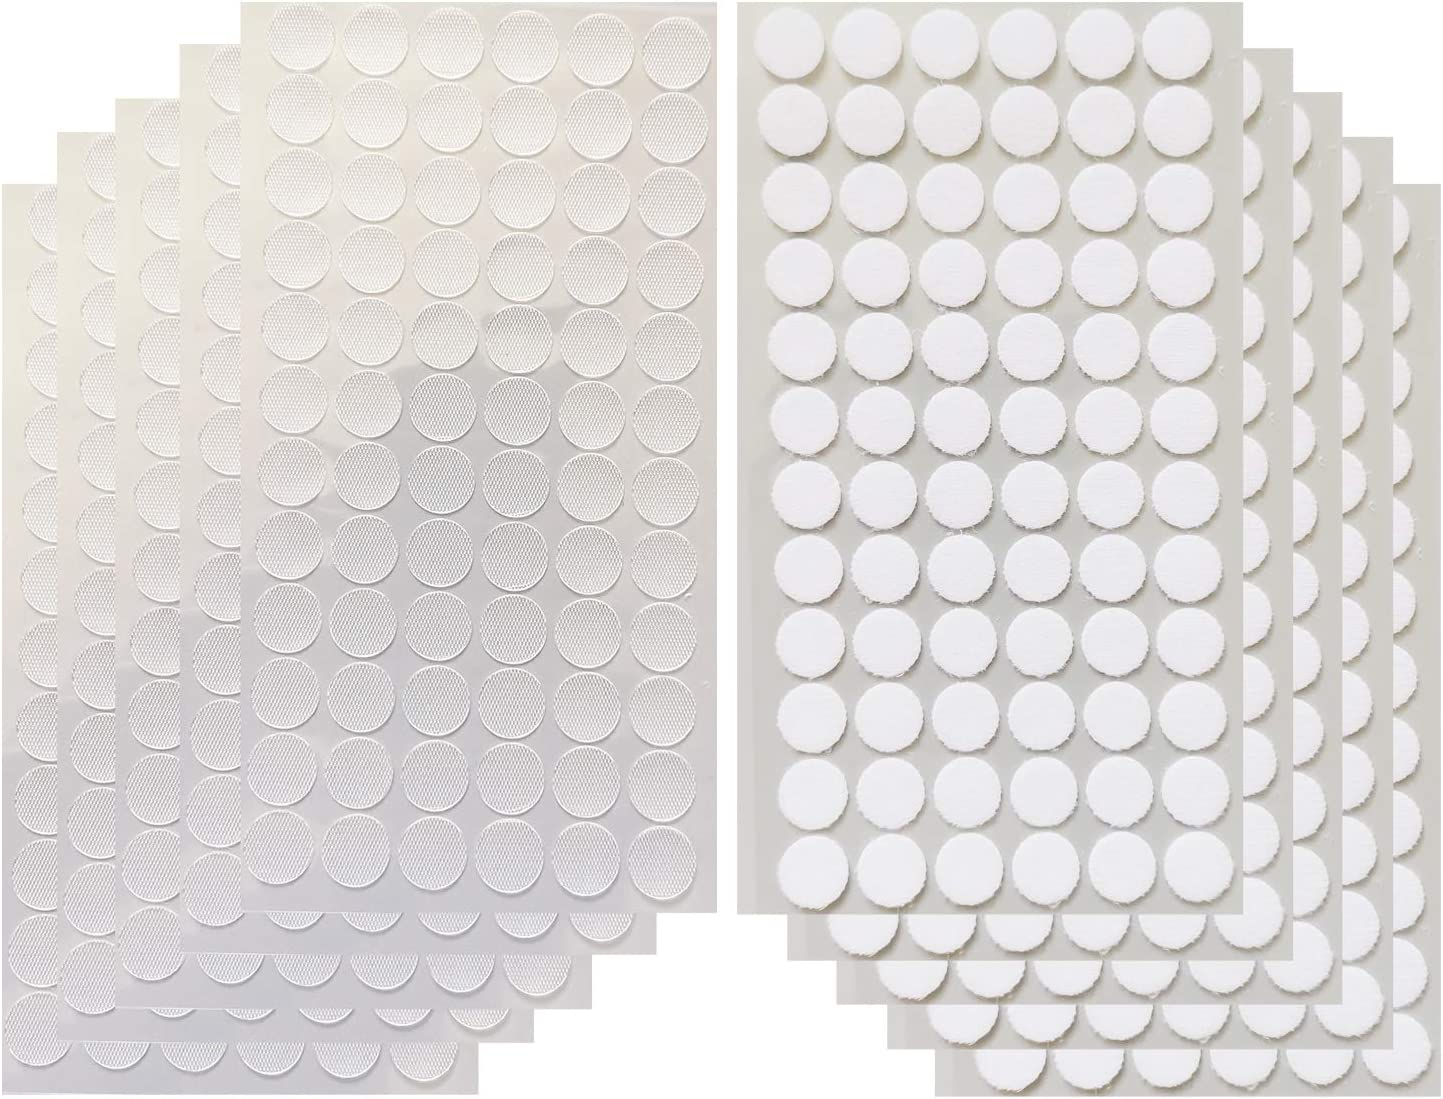 Vkey 700pcs (350pairs) 1.5cm Diameter Transparent Sticky Back Thin Clear Dots with Adhesive Hook & Loop Coins Tapes